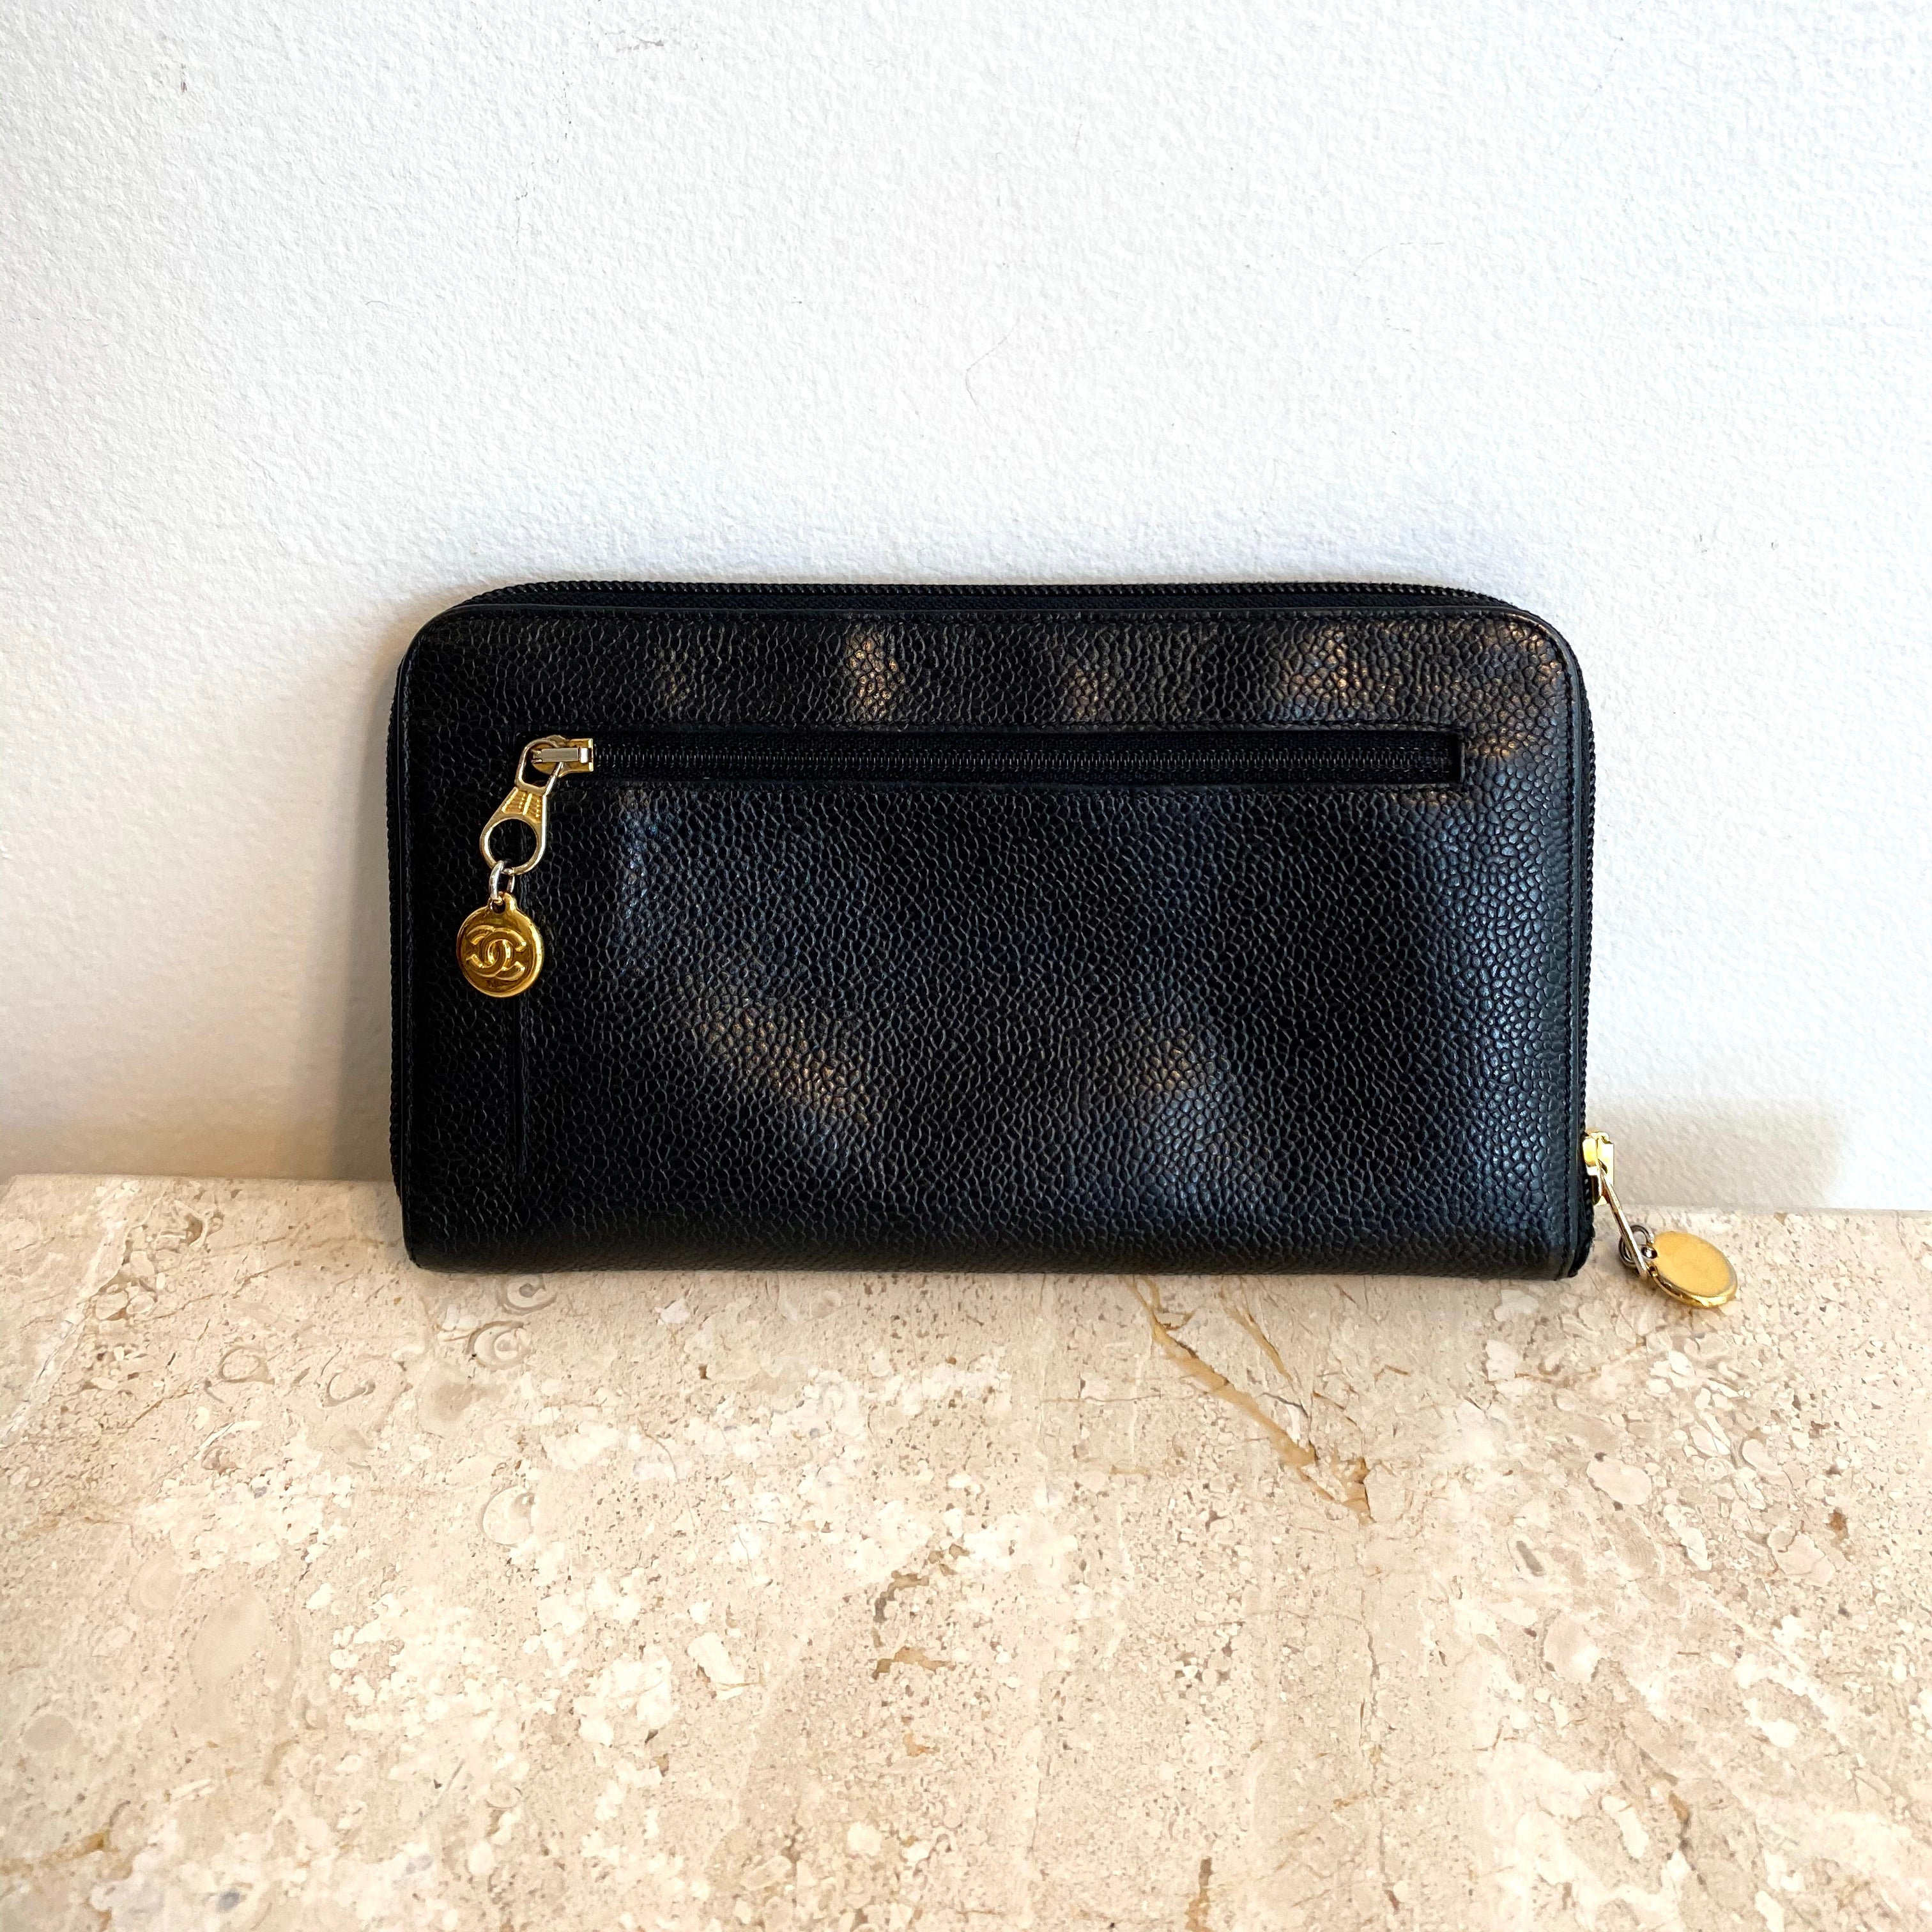 Authentic CHANEL Timeless Large Zippy Wallet